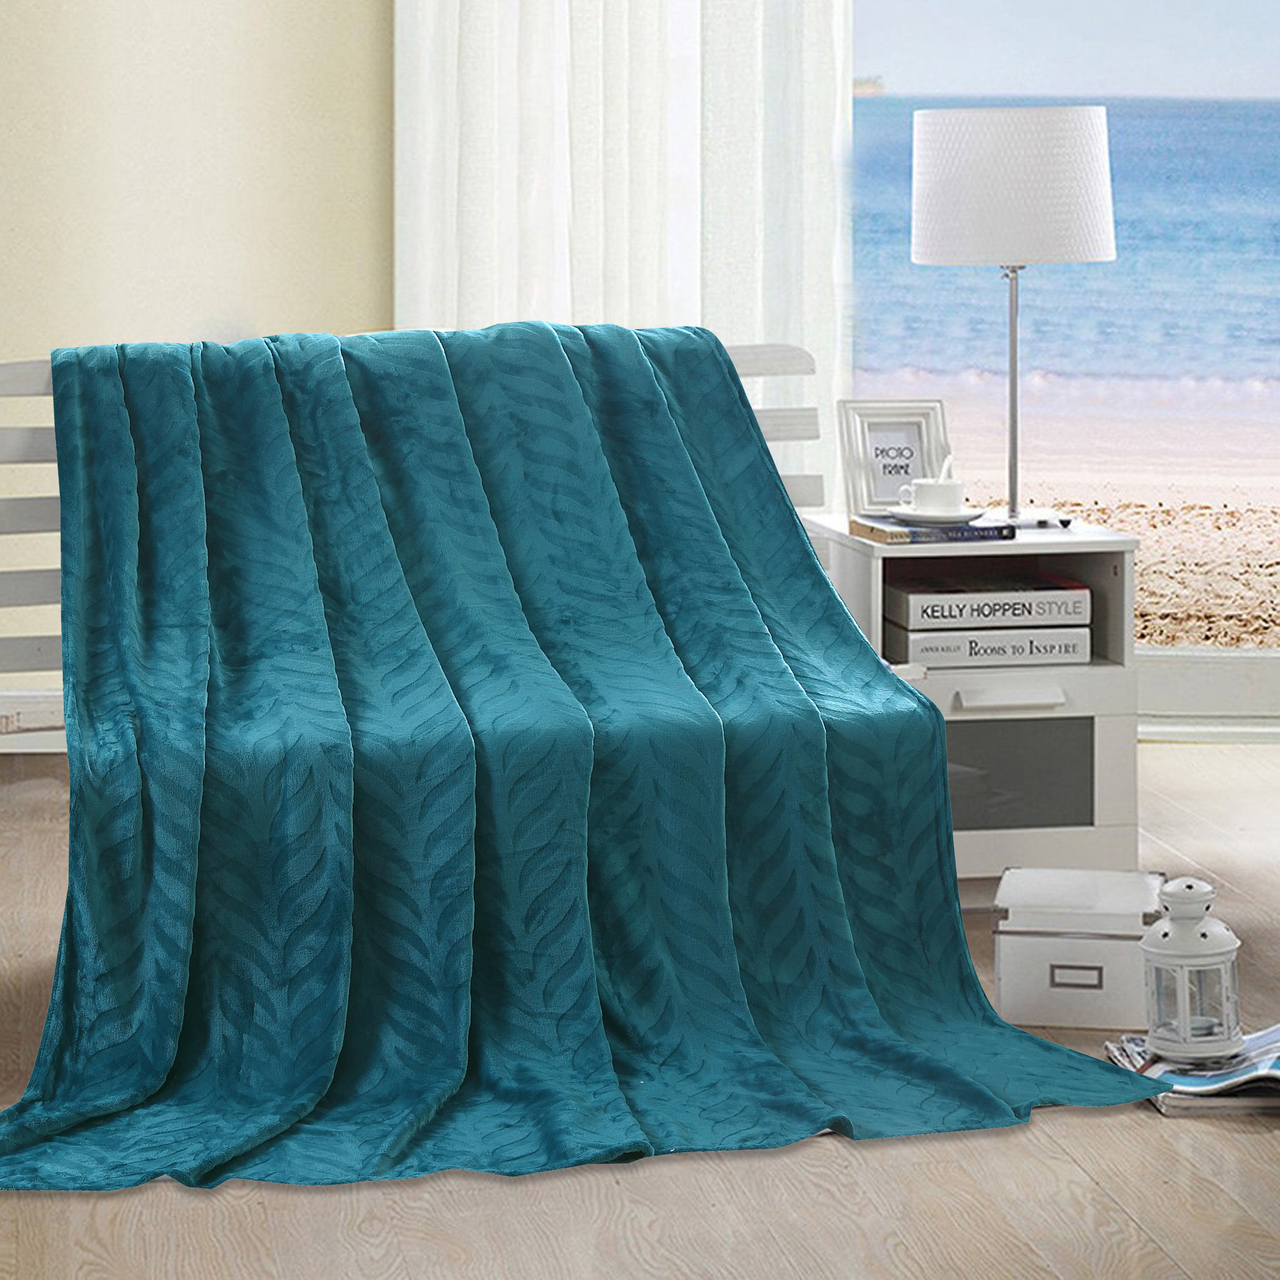 Micro Fleece Leaf Etched Jacquard Throw Blanket 50x60 (Teal)